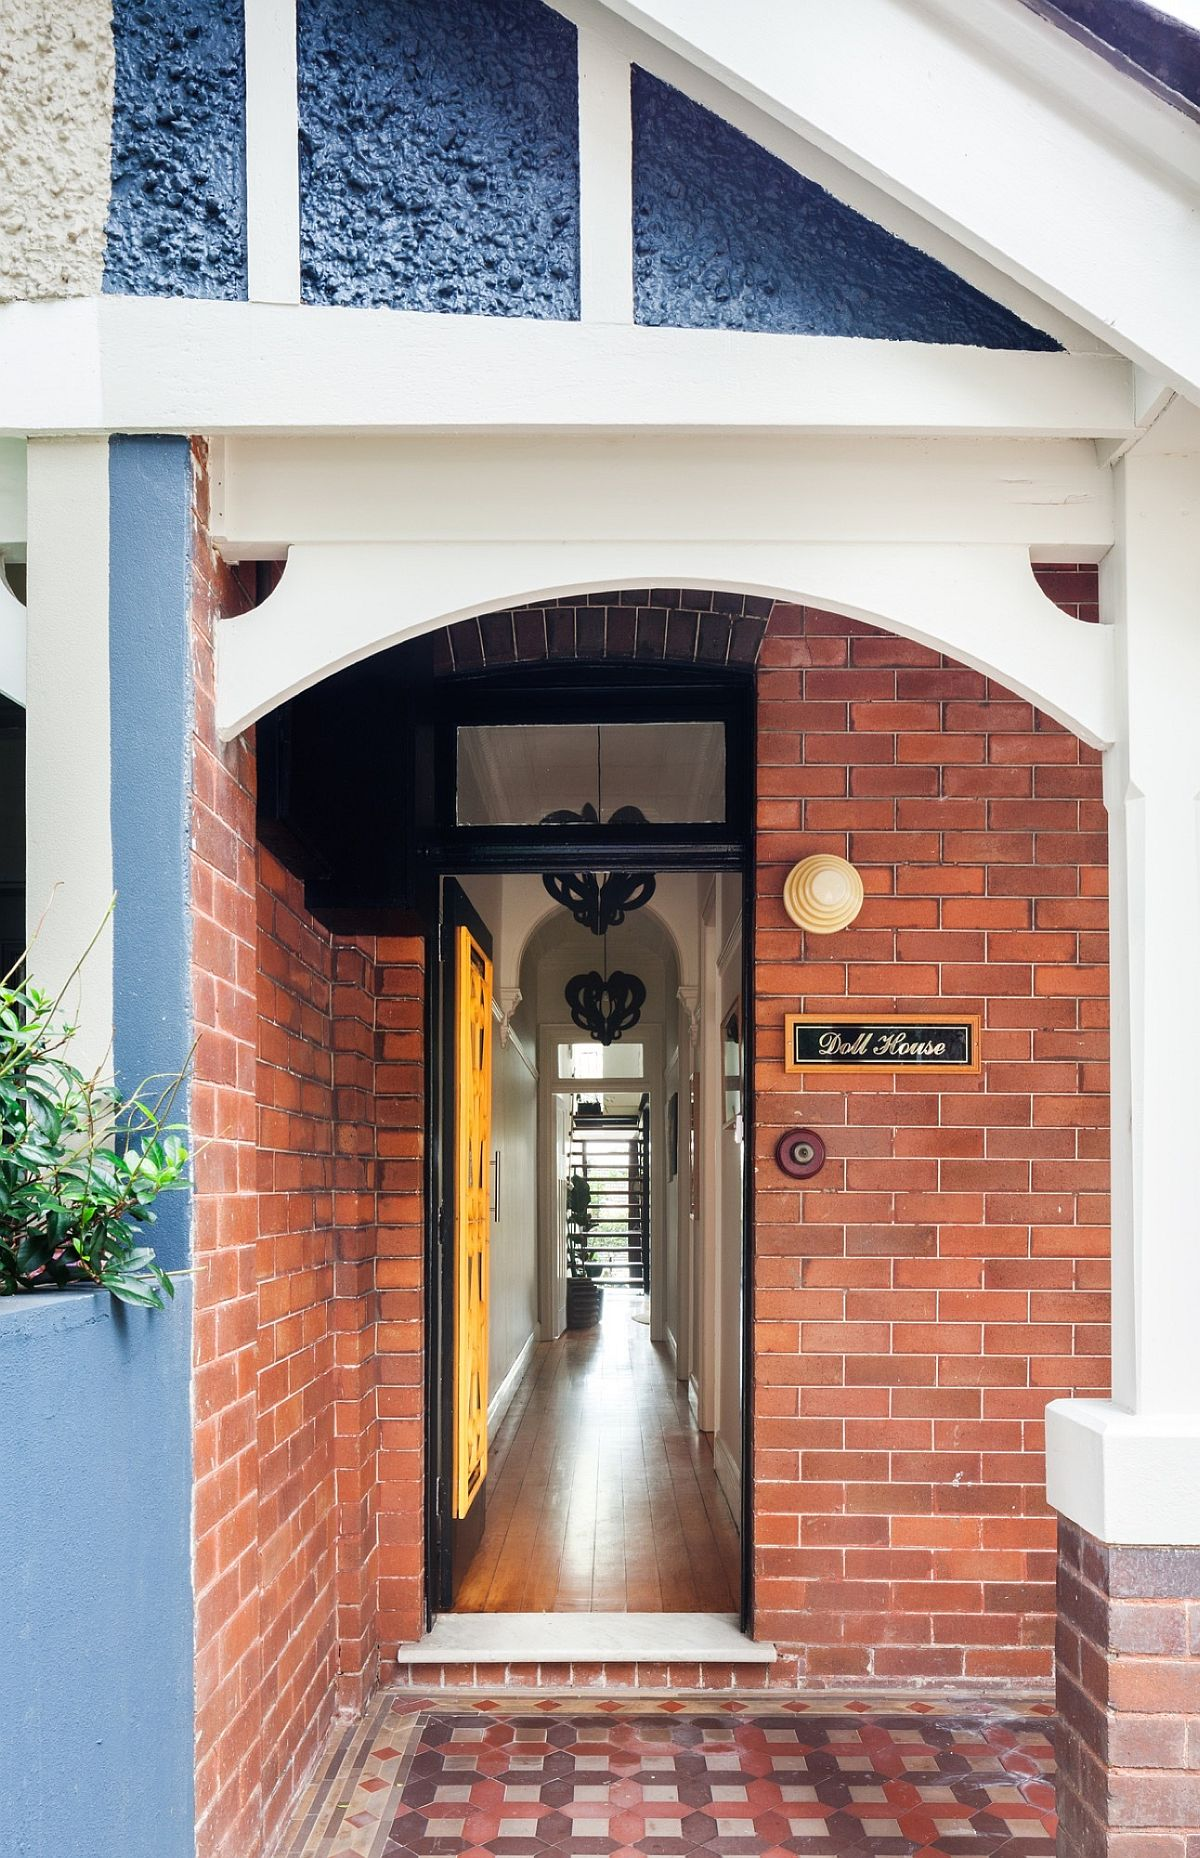 Brick wall entrance of the remodeled home in Sydney